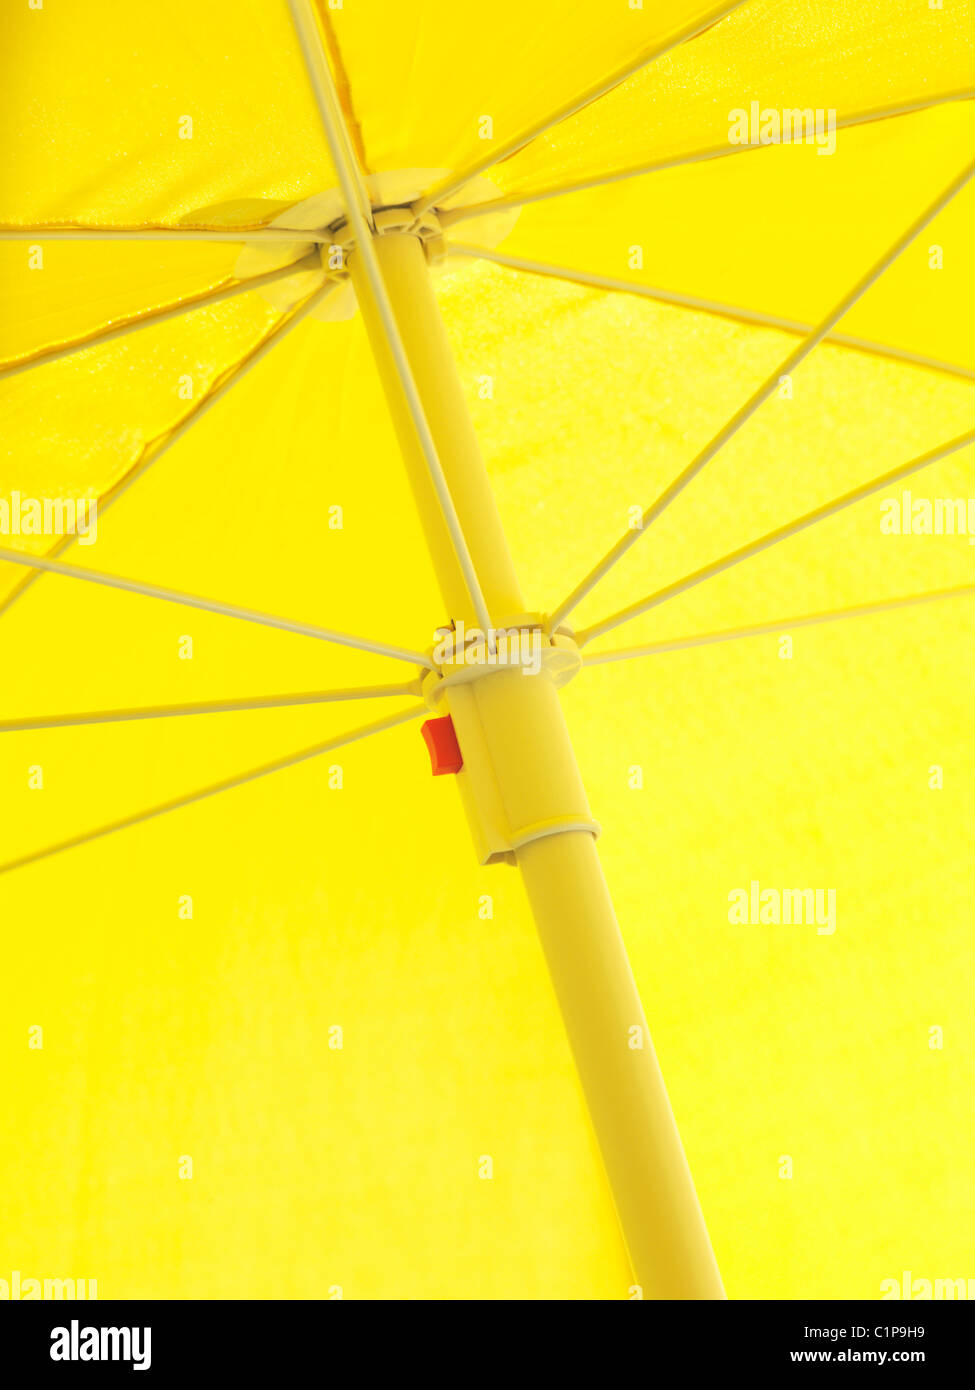 Close-up low-angle view of yellow sunshade - Stock Image